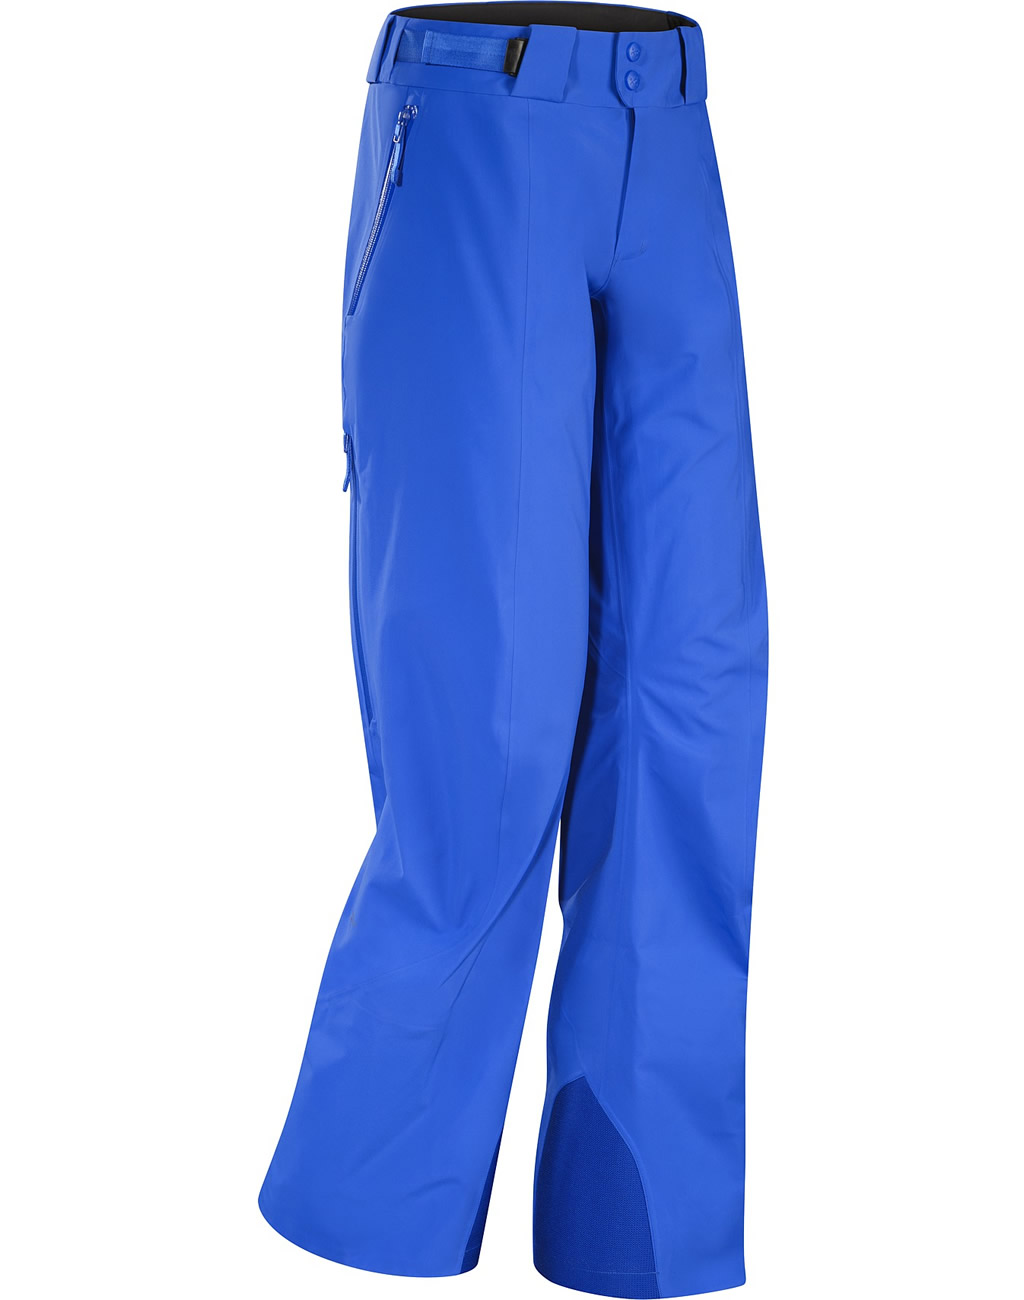 Blue Stingray Pant for Women's by Arc'teryx